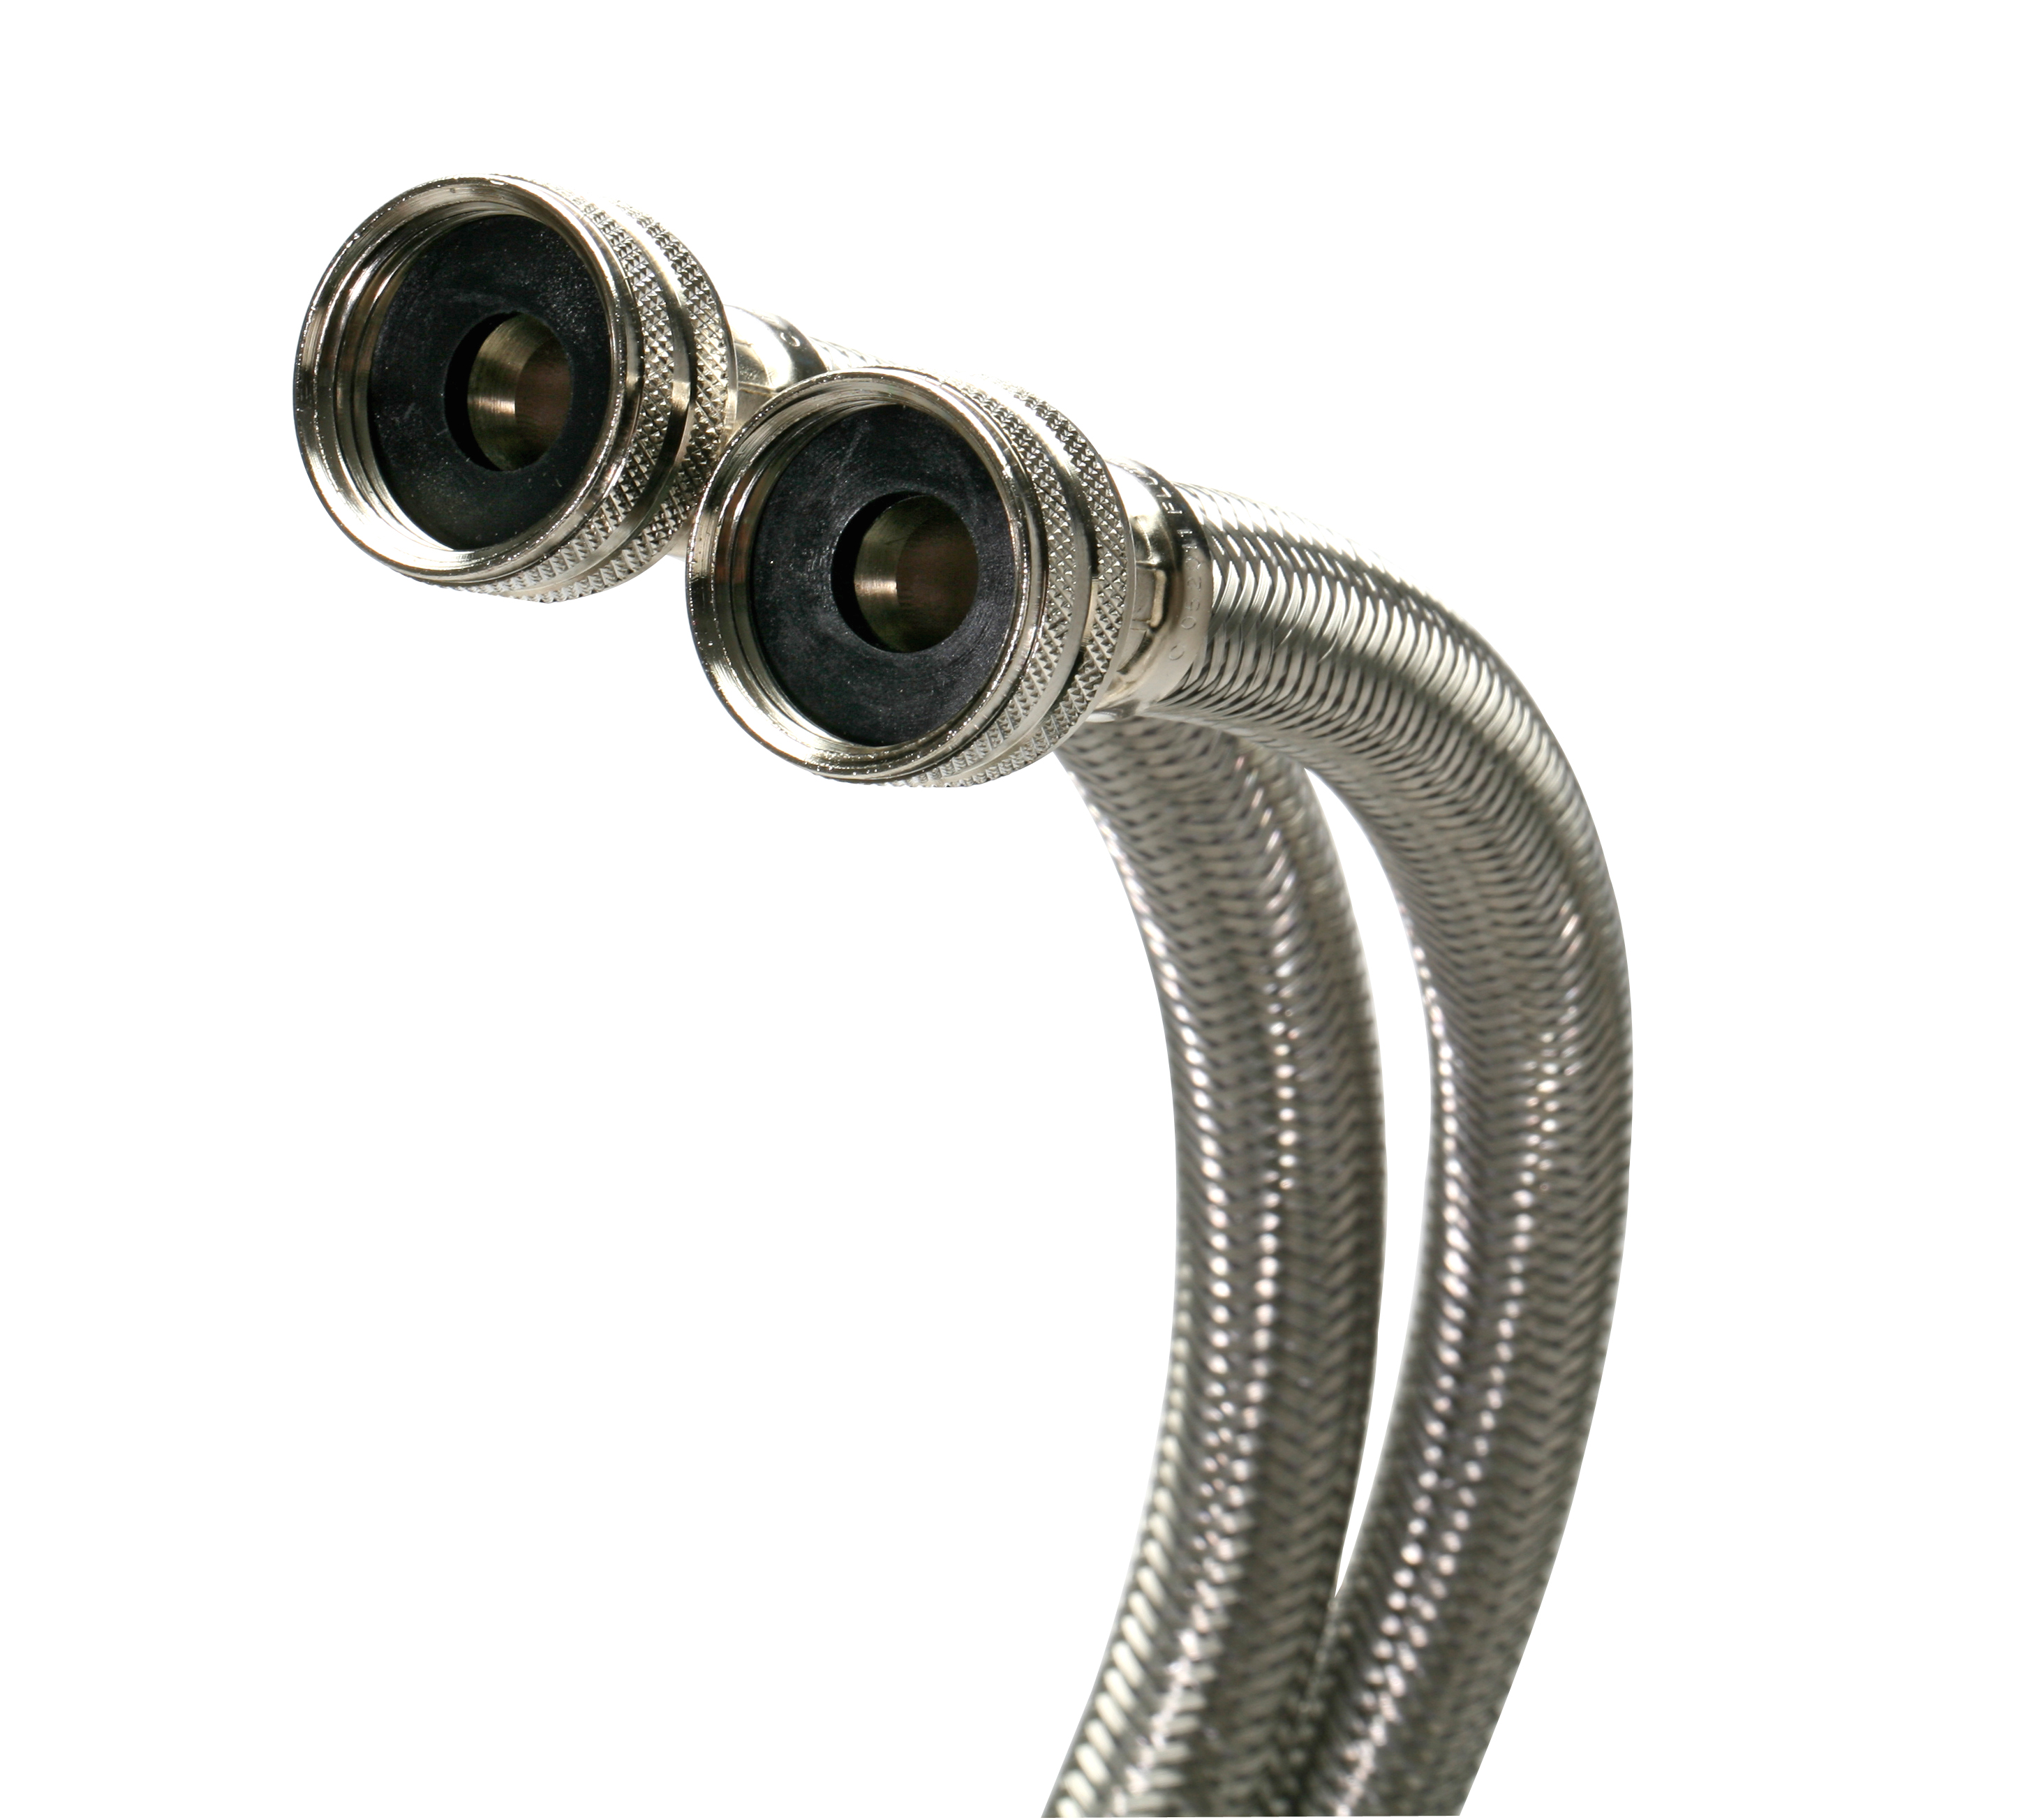 VPA 420004 Braided Hose Cutter For Use With Braded Stainless Steel Hose